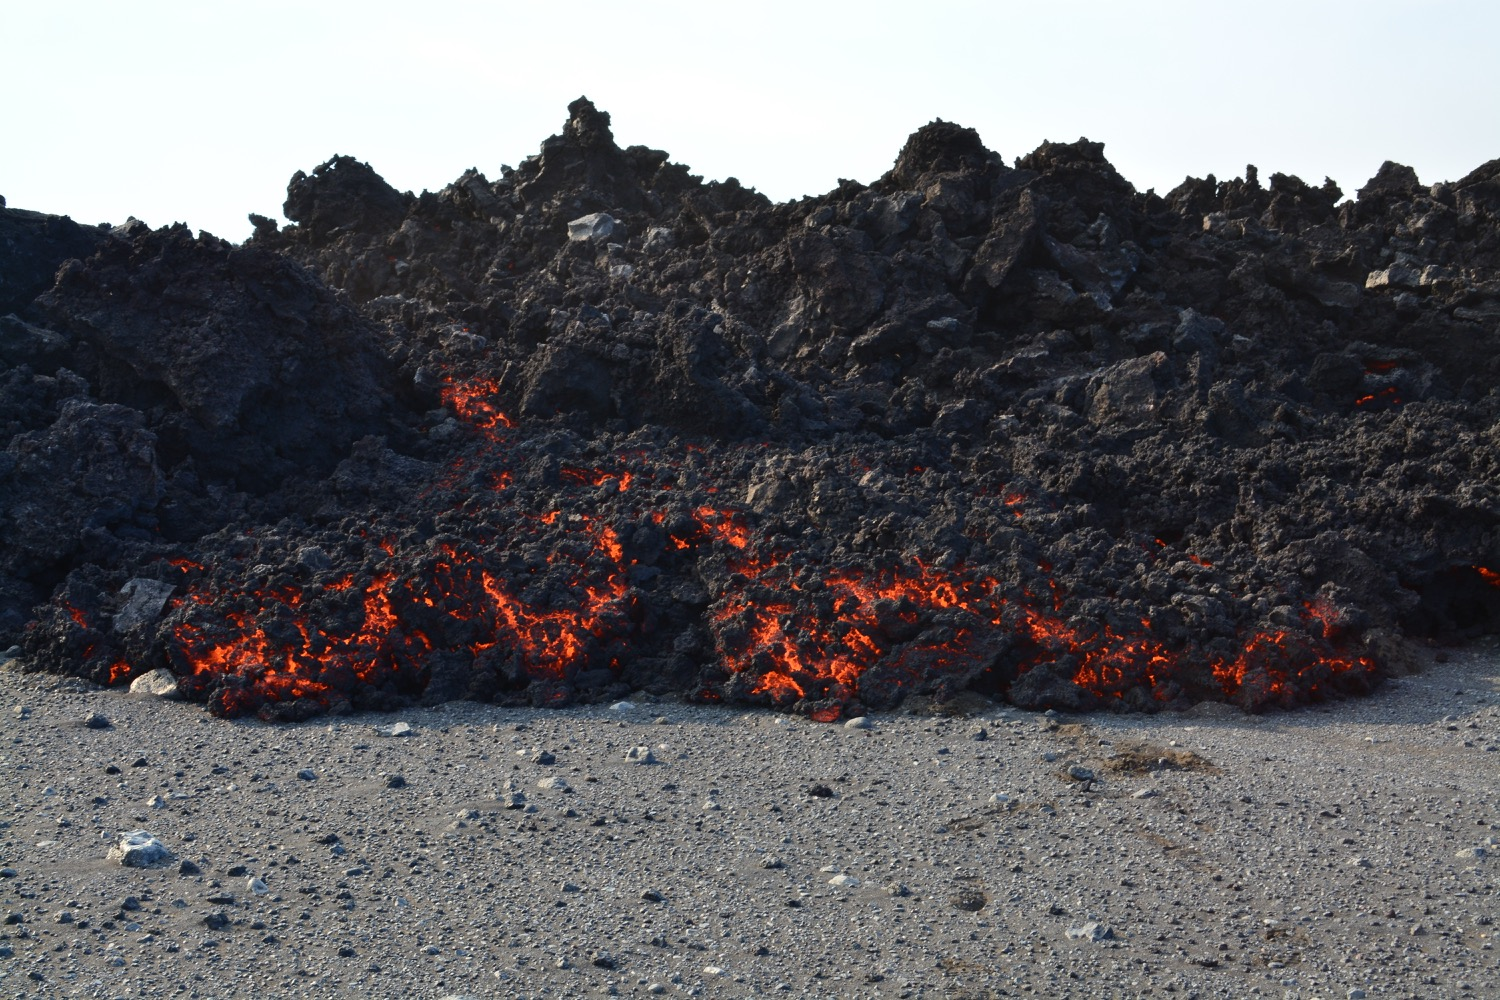 very thick gravel-y looking lava from a natural flow looks like it is approaching the camera on the sand